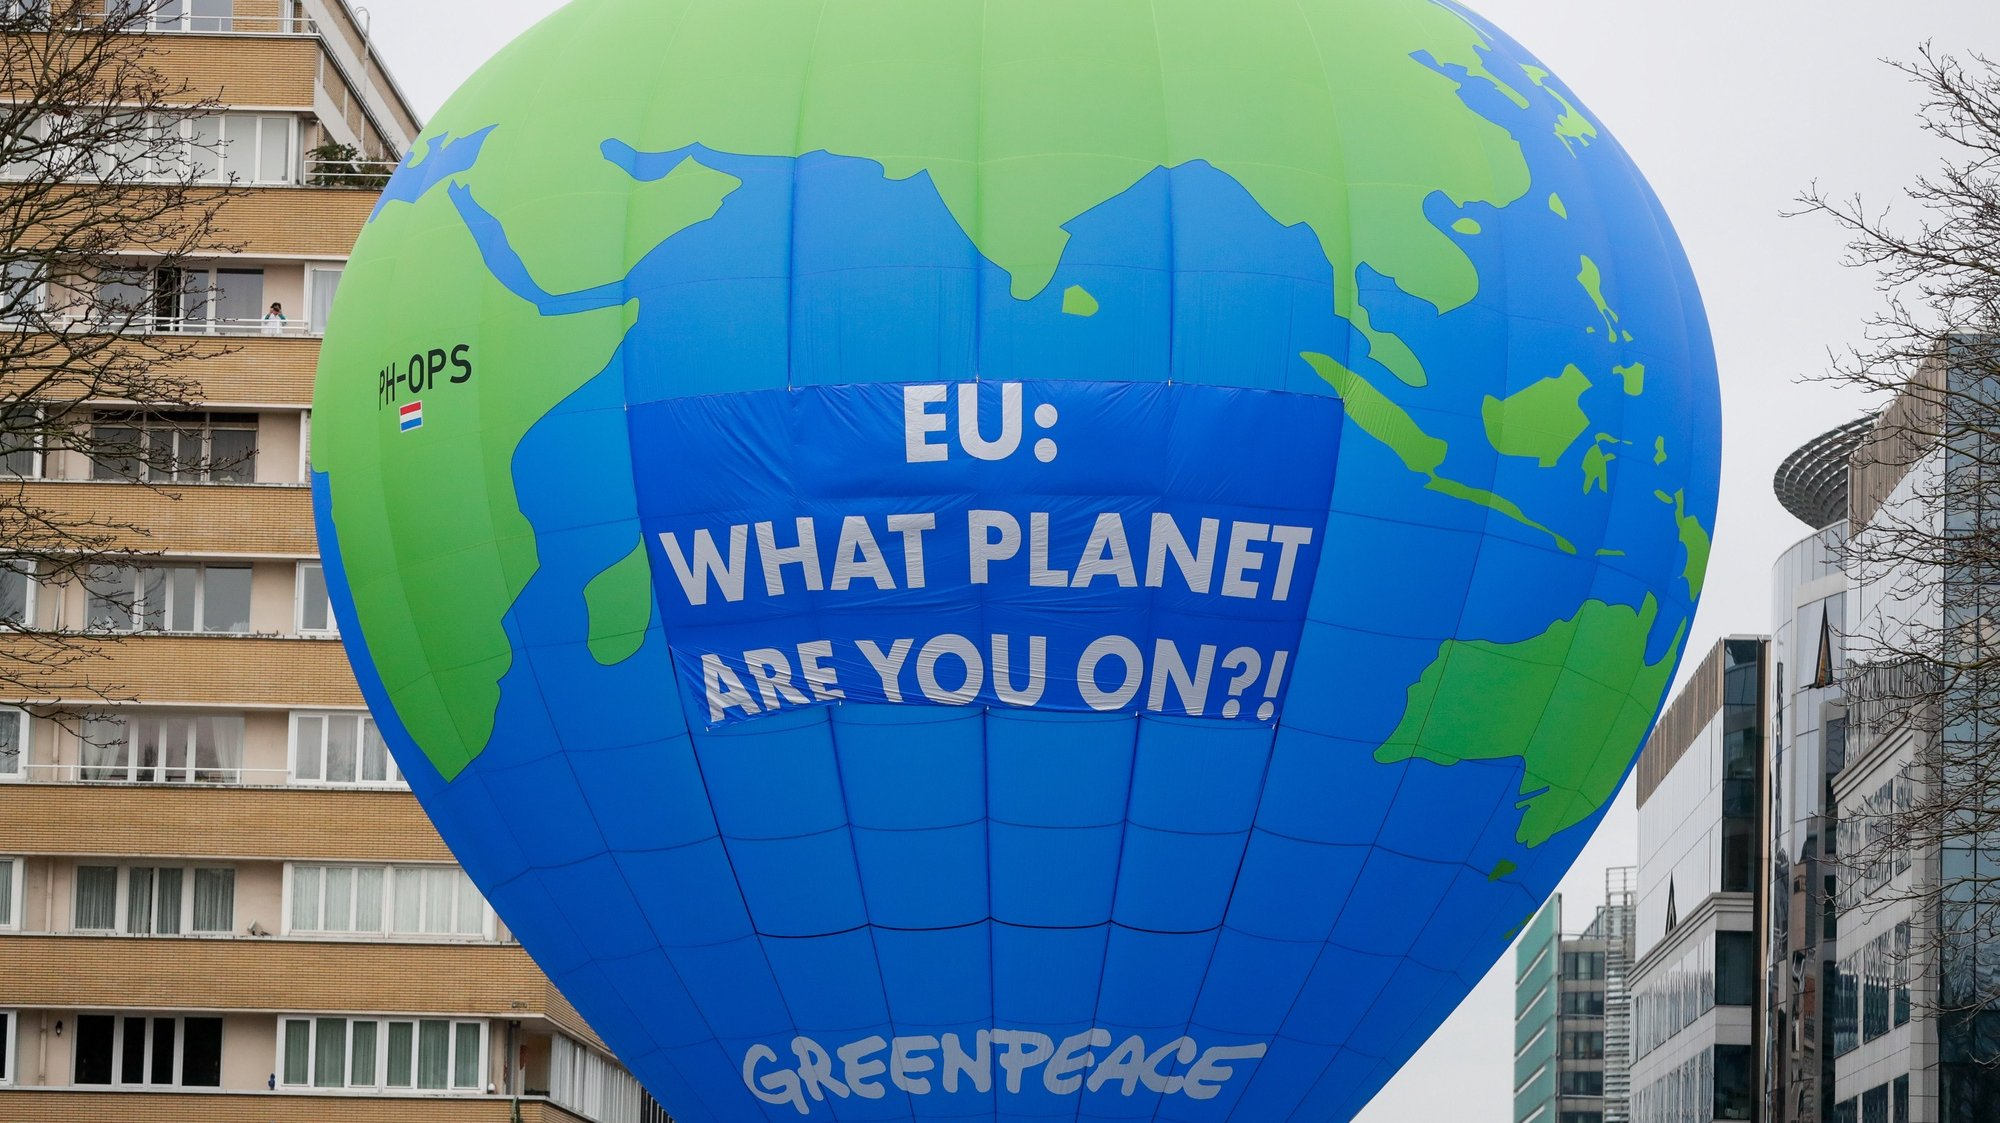 epa08873835 Environmental activists display a hot air balloon depicting the earth ahead of an EU leaders' summit in Brussels, Belgium, 10 December 2020. European Union leader are expected to discuss a deal to reduce greenhouse gas emissions by at least 55 per cent by 2030 during their summit in Brussels after they failed to agree on this target in October meeting.  EPA/STEPHANIE LECOCQ